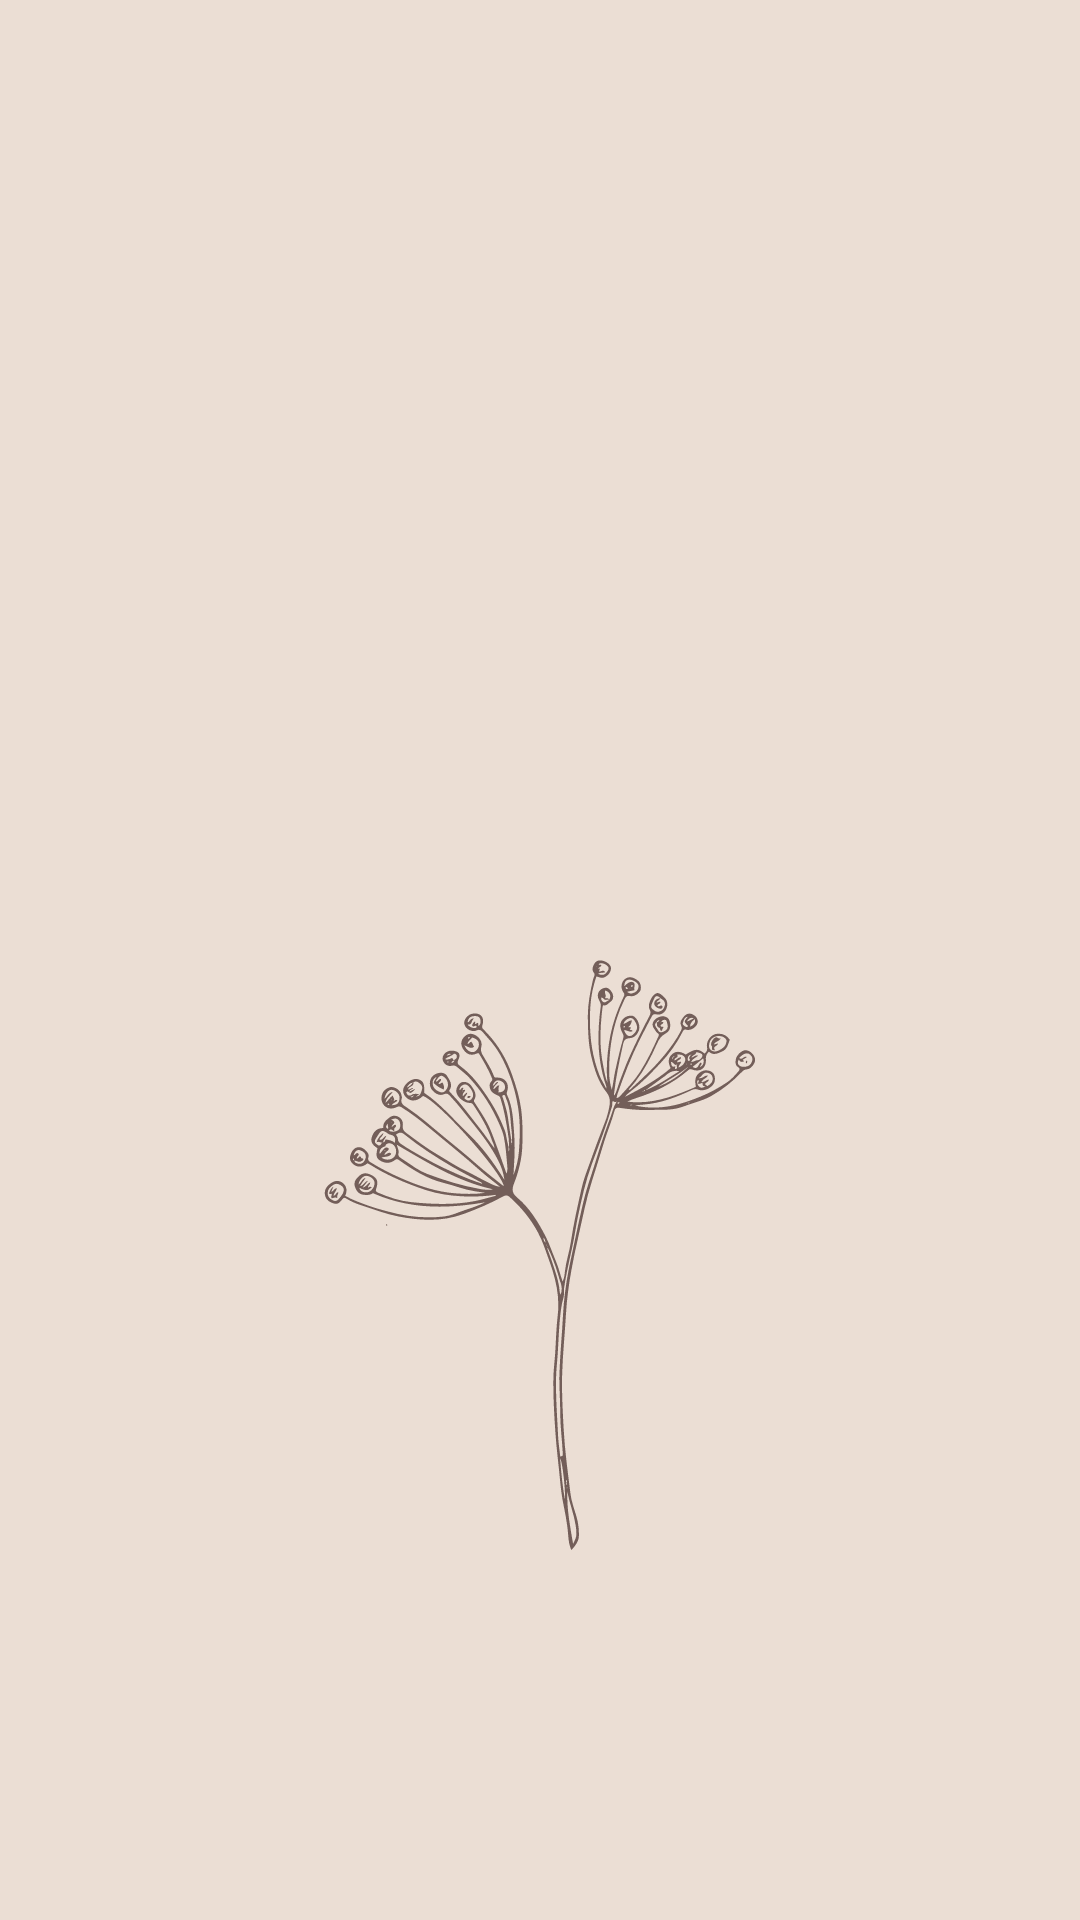 wildflower wallpaper